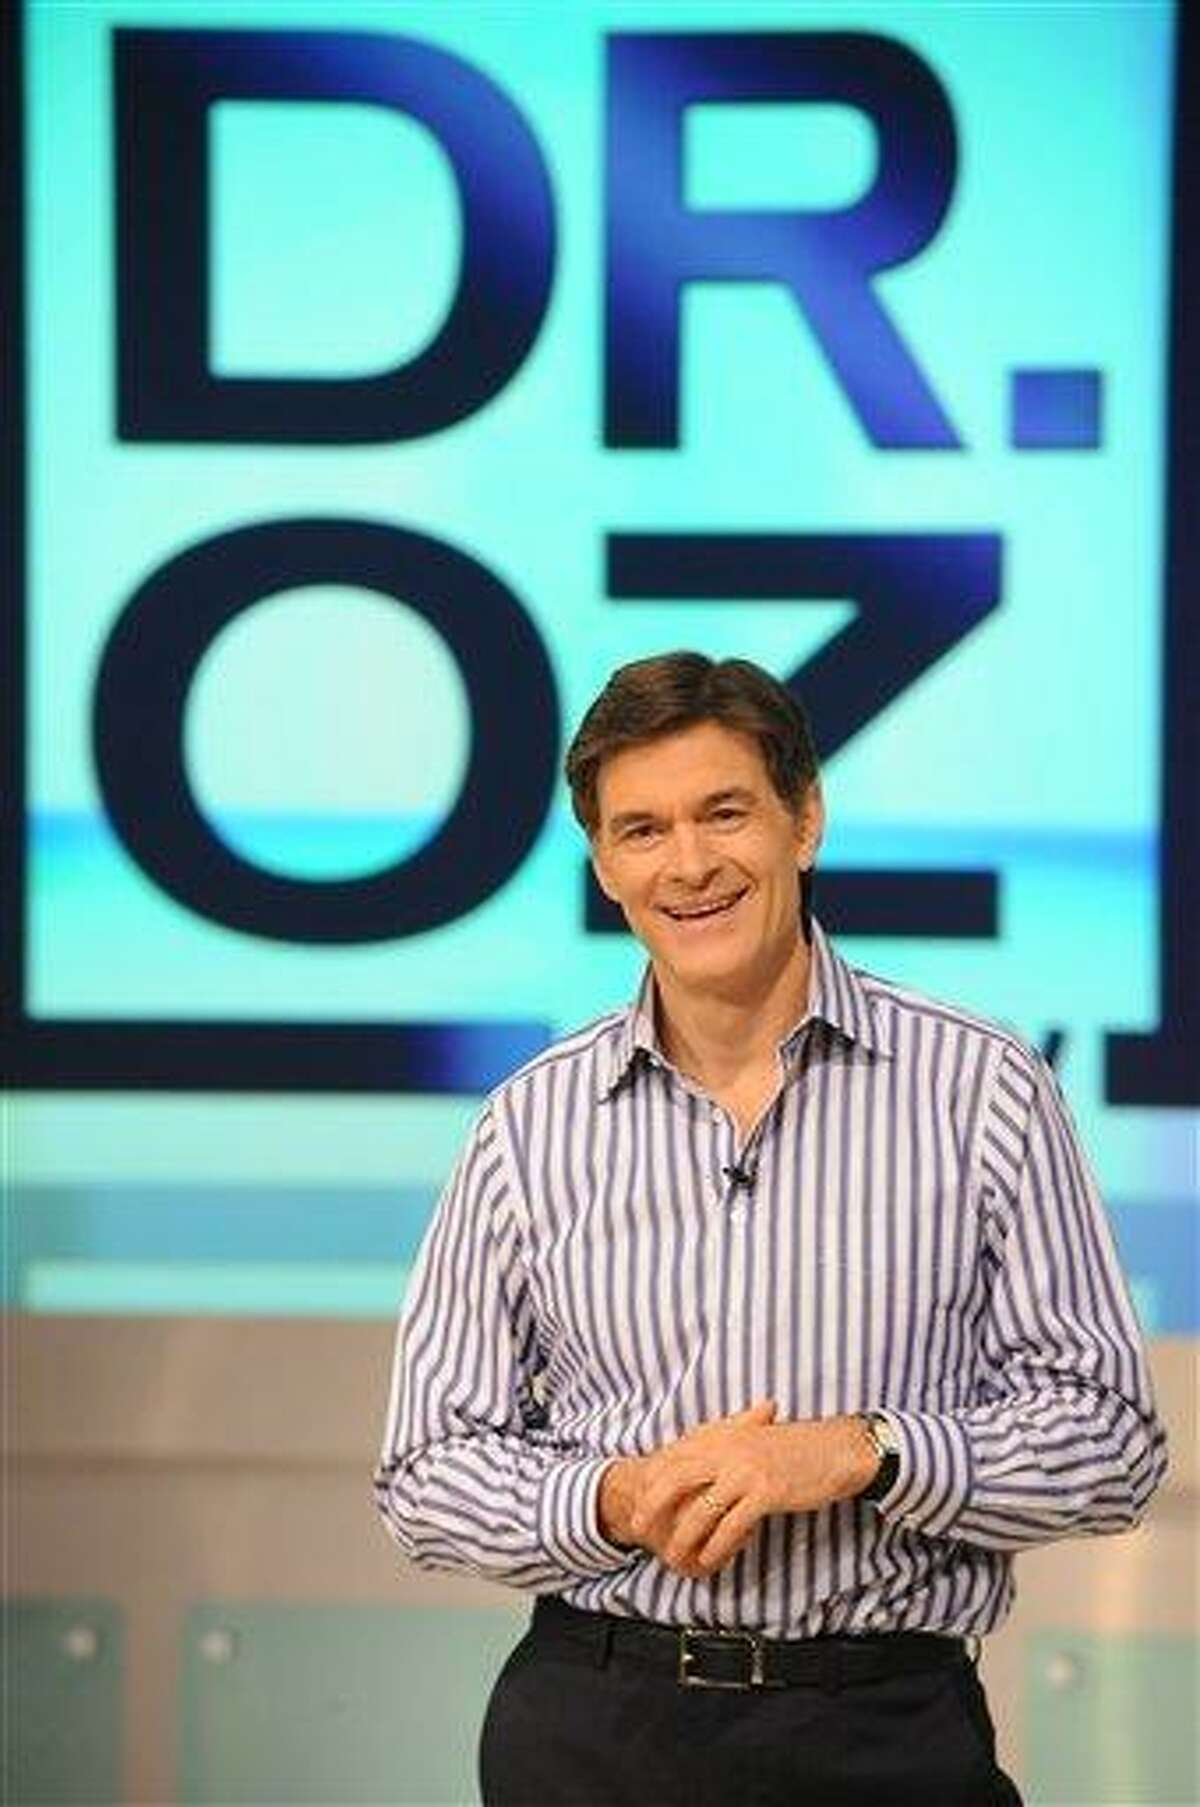 In this Aug. 12, 2009 file photo provided by Harpo, Inc., Dr. Mehmet Oz is pictured during the production of The Dr. Oz Show in New York.